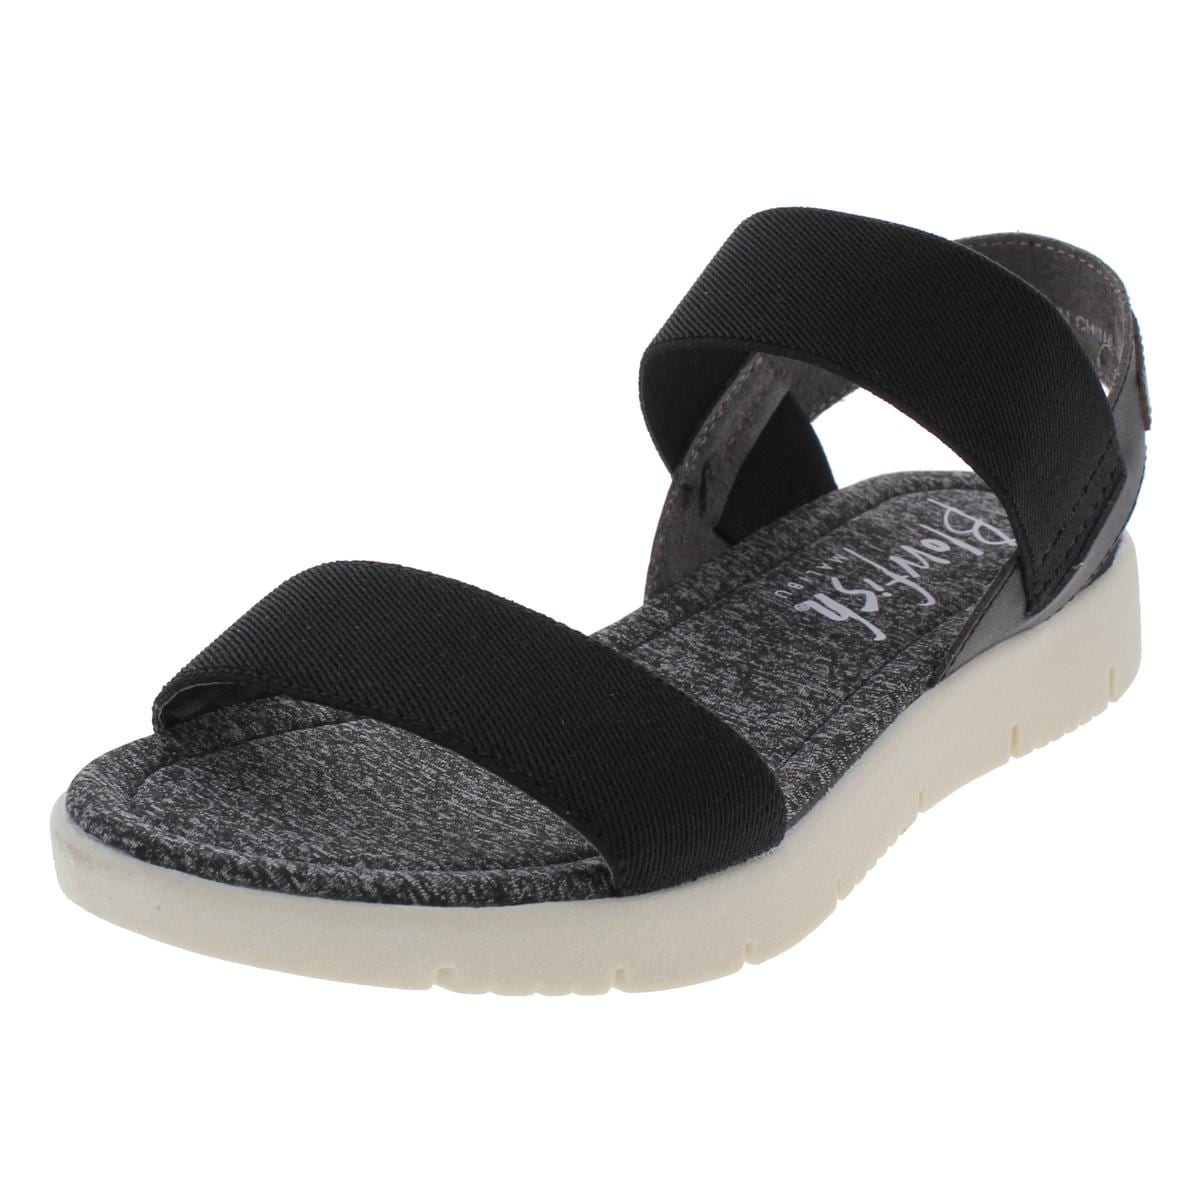 Blowfish Womens Brit Sport Sandals Open Toe Slingback - Free Shipping On  Orders Over $45 - Overstock.com - 26399434